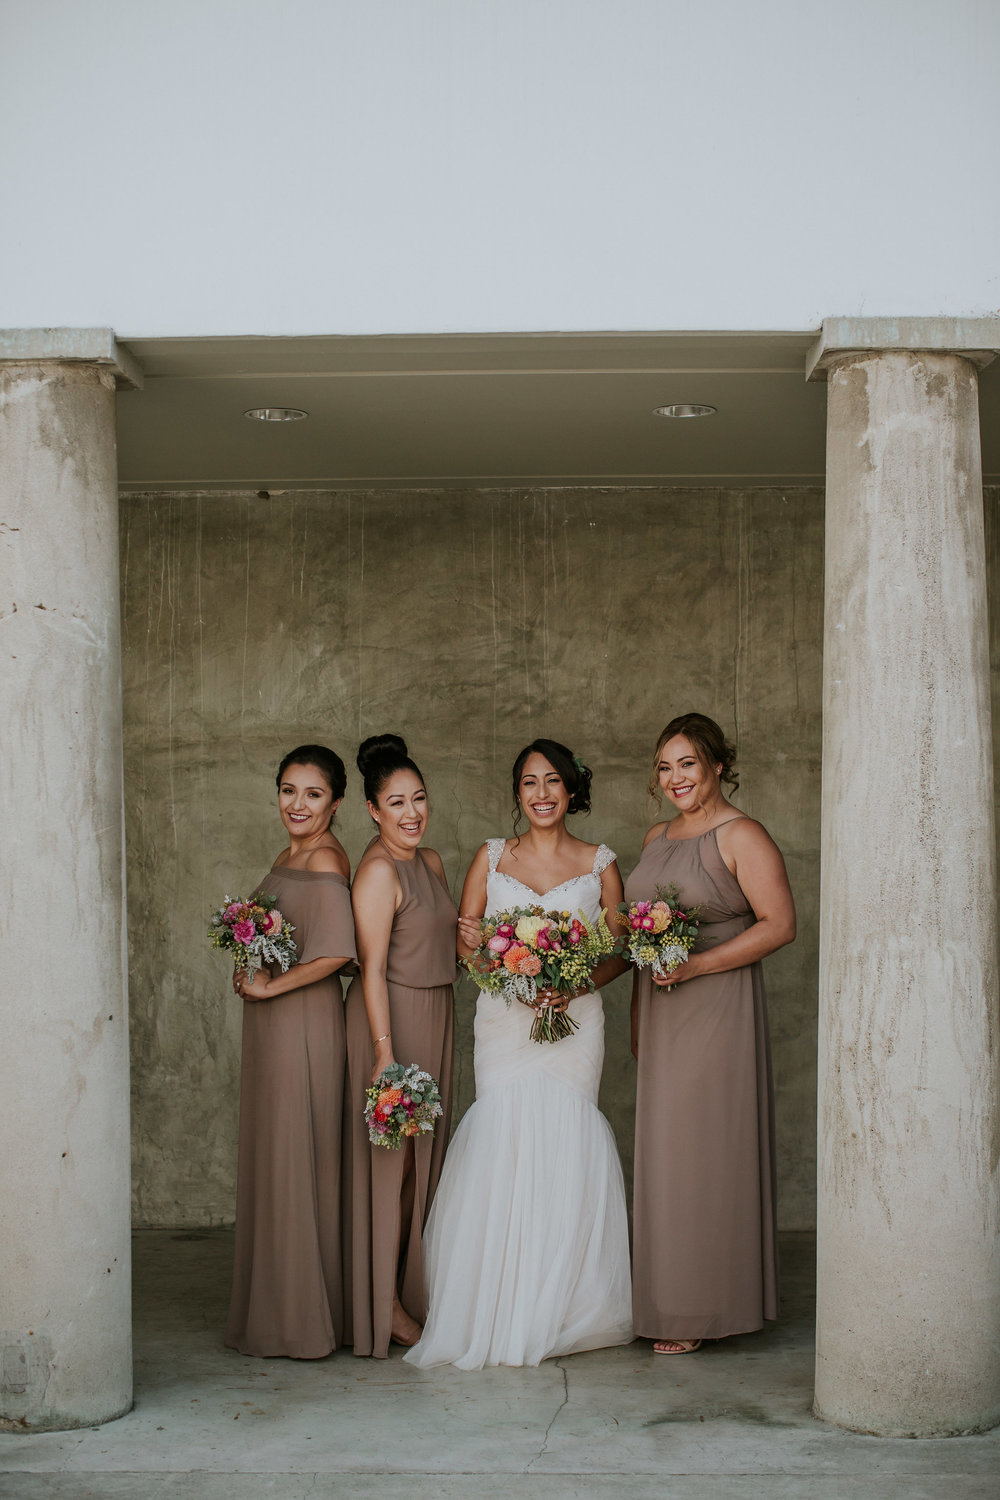 bridesmaids with bright bouquets #lrqcfloral #brightbouquet